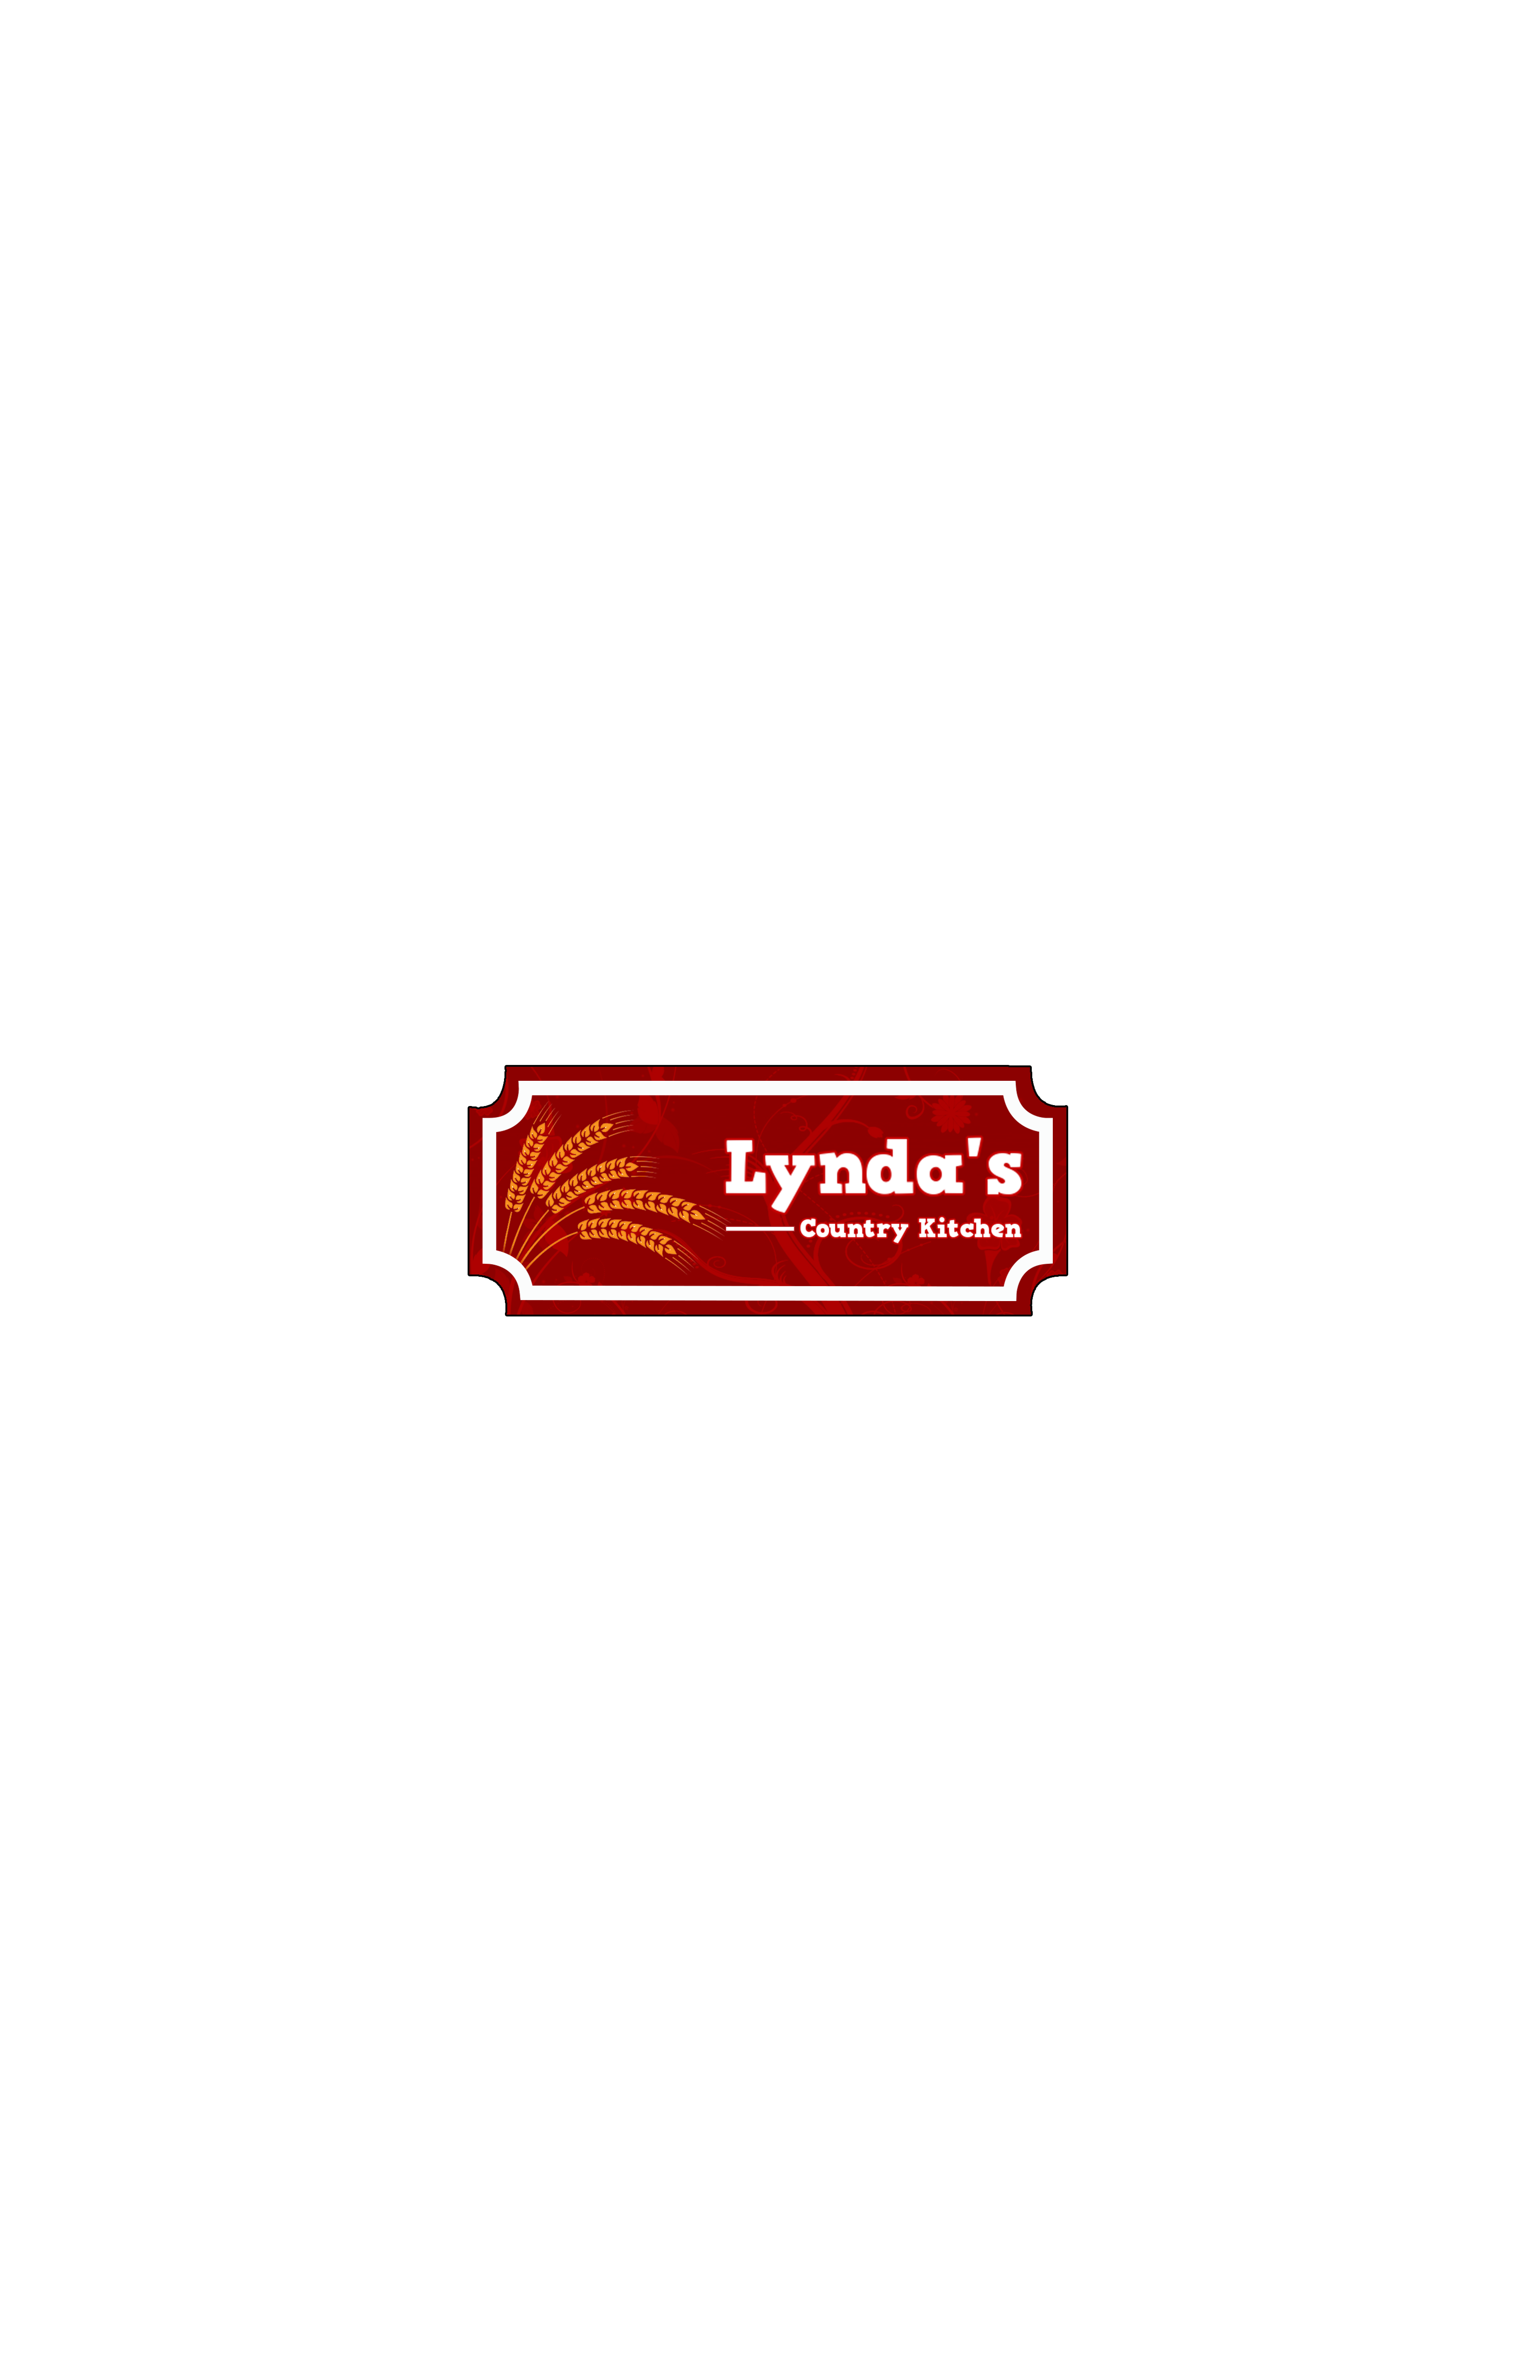 Country Kitchen Logo Lynda's Country Kitchen Logo And Identity On Behance